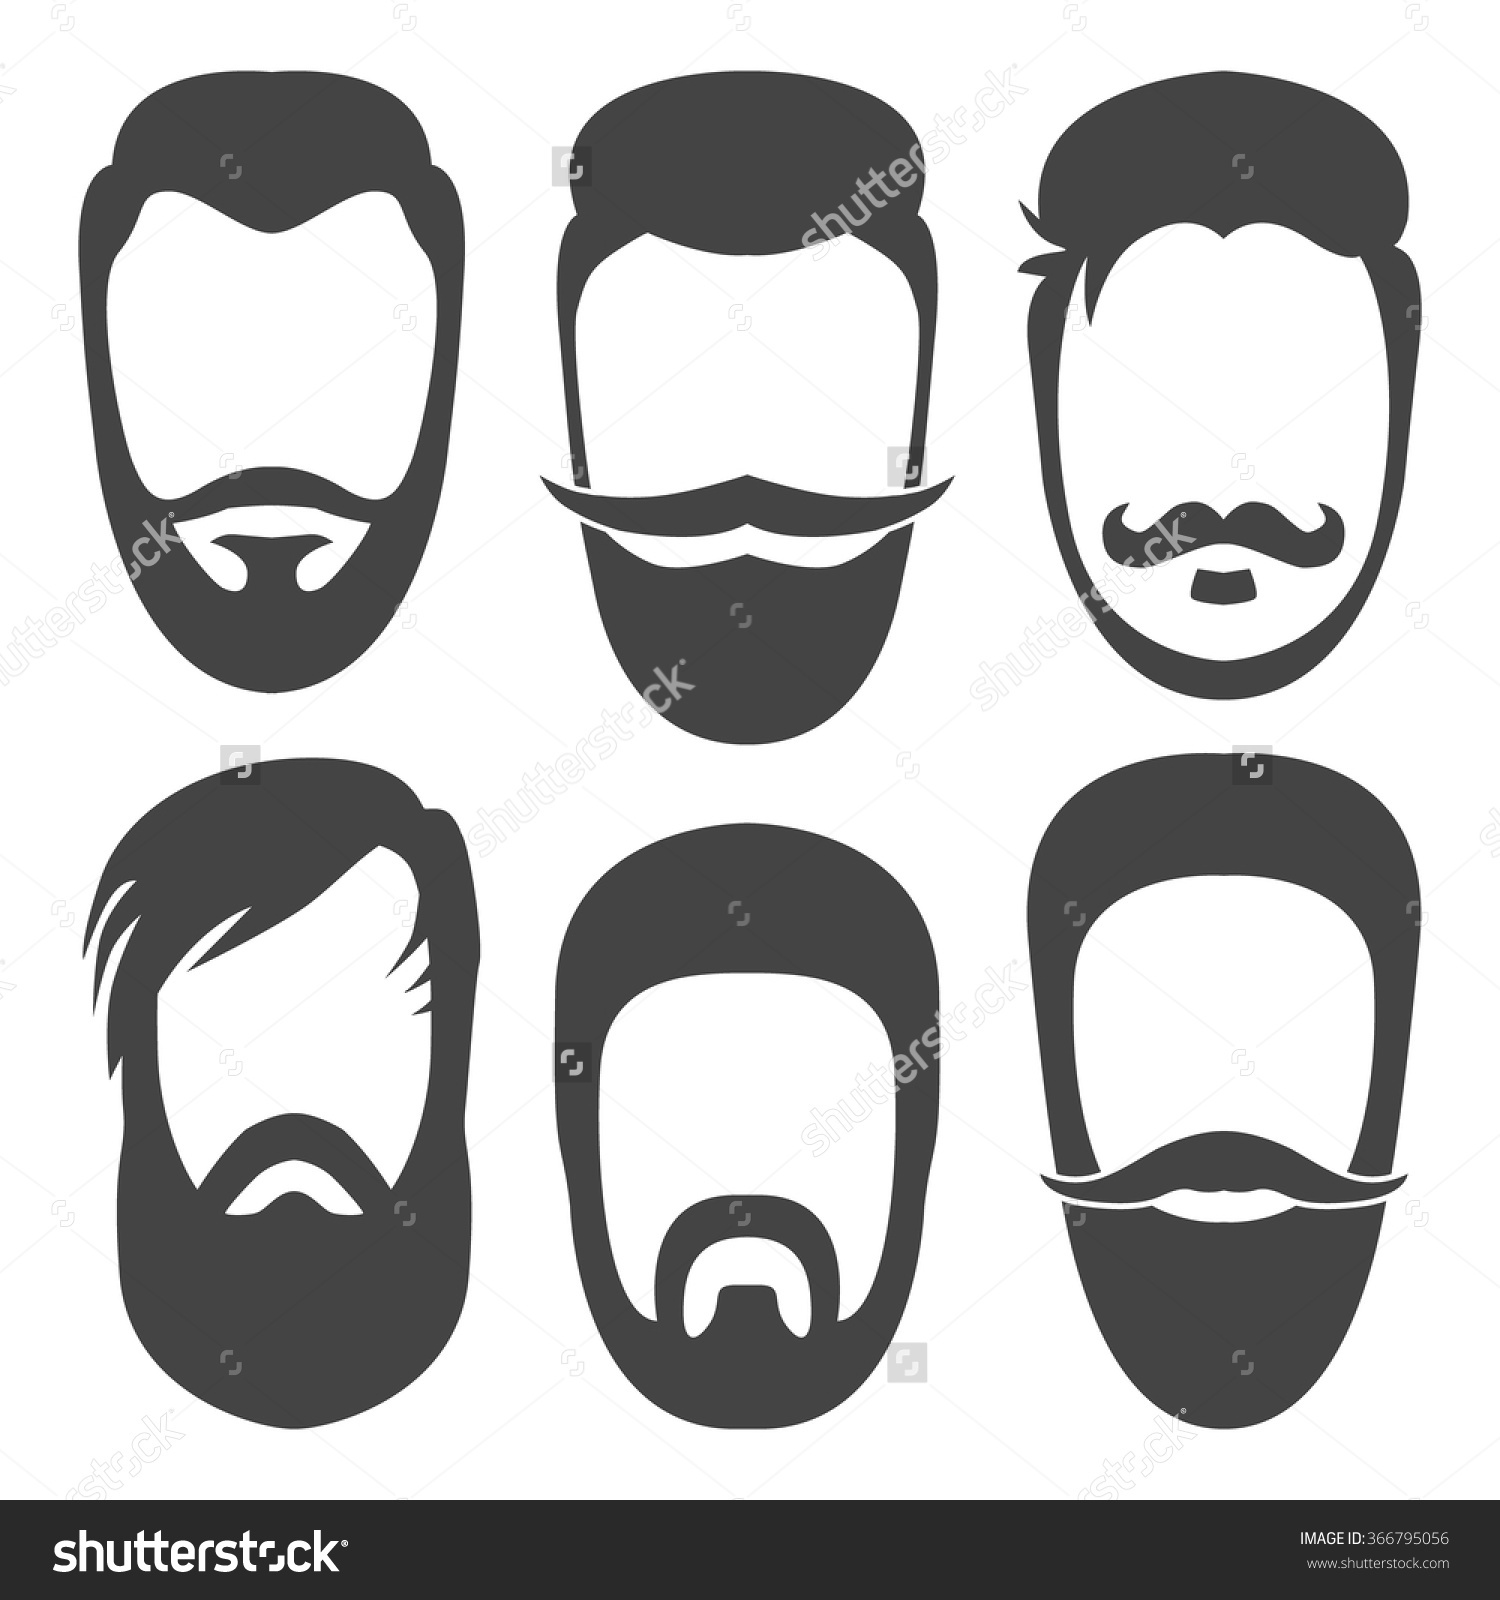 Beard clipart vector. Suggestions for download hipster